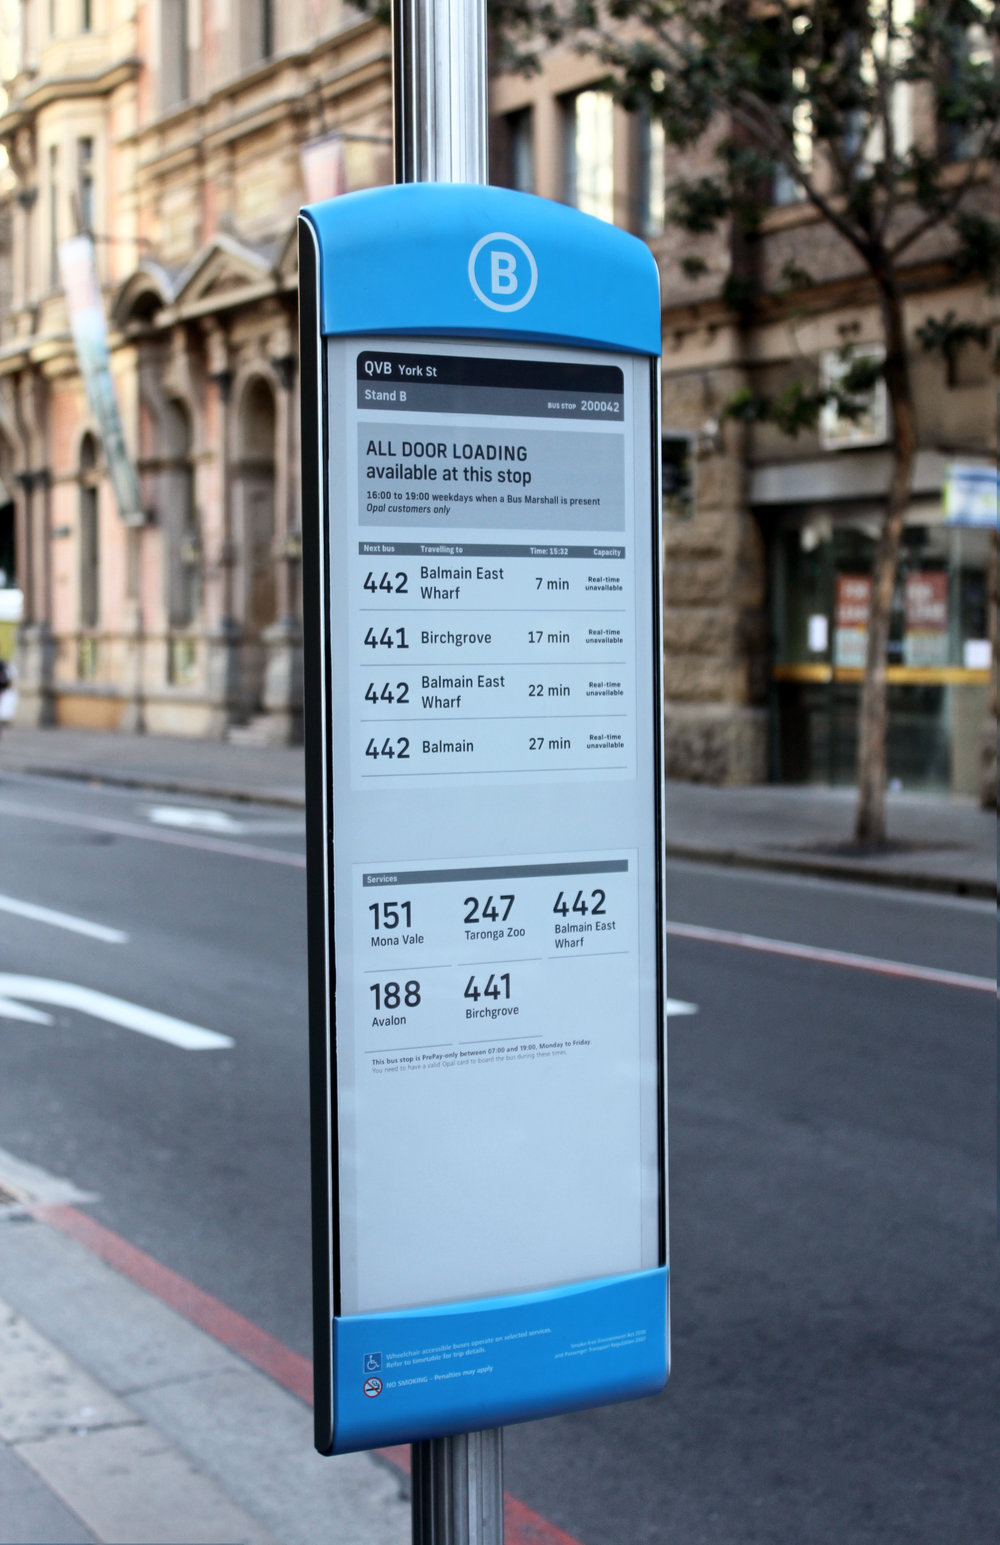 S Y D N E Y . - New digital bus stops have been installed around Sydney's Town Hall, replacing traditional bus stop paper timetables. Dubbed 'eStops' and developed on electronic paper, the displays have been developed with the commuter in mind, making access to travelling information and emergency notifications easier than ever before.Nowhere is this more crucial than in Sydney—one of the busiest cities in the world, the metropolis is host to a variety of 'special city events', where streets are closed and normal city flows disturbed. Now providing this event information in real time is possible with the eStop!